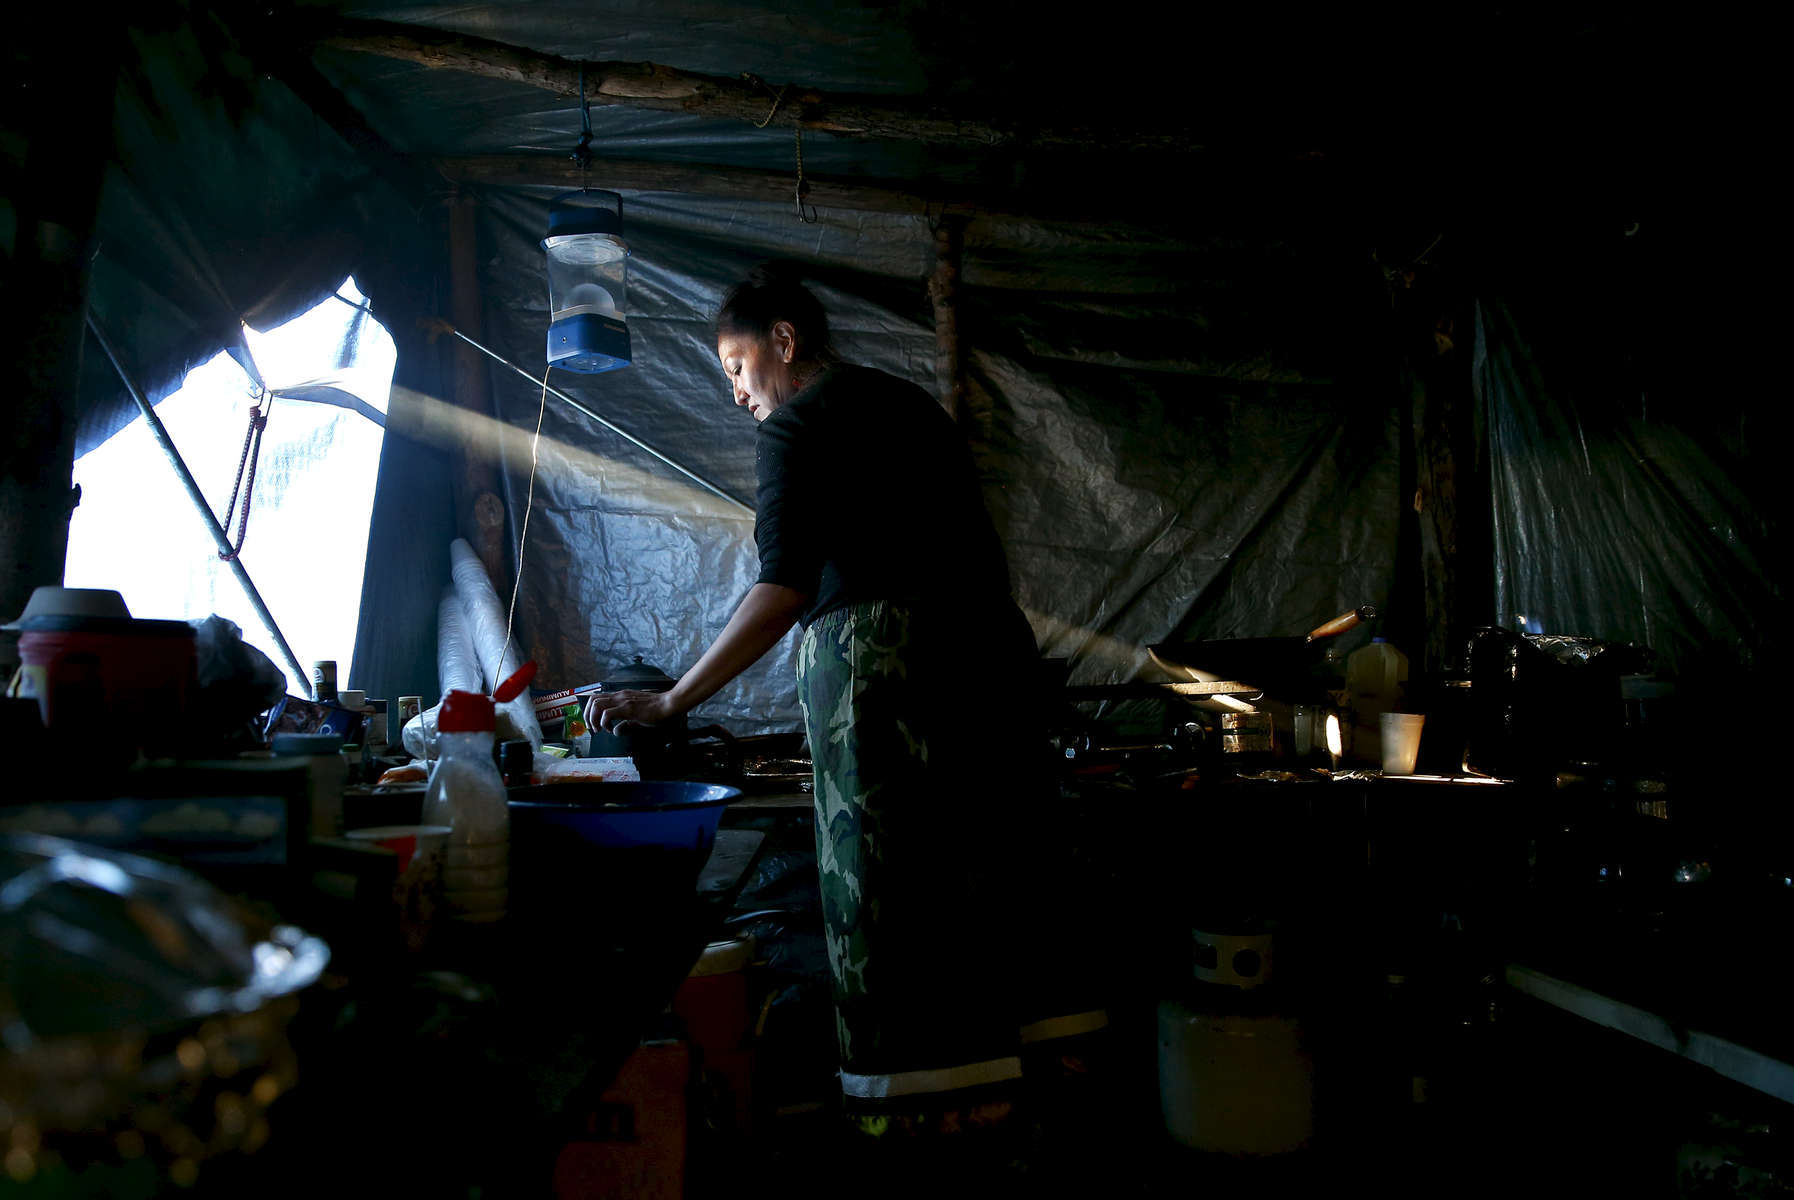 Lelani Running Bear, of the Standing Rock Reservation, prepares a meal for members of High Star camp. She moved here in August from her home on the Standing Rock Indian Reservation to protest the Dakota Access Pipeline. Since then, her makeshift kitchen has become a kind of sanctuary for both her and others — a place to escape the anxiety, uncertainty, and fear that have come to define life here.